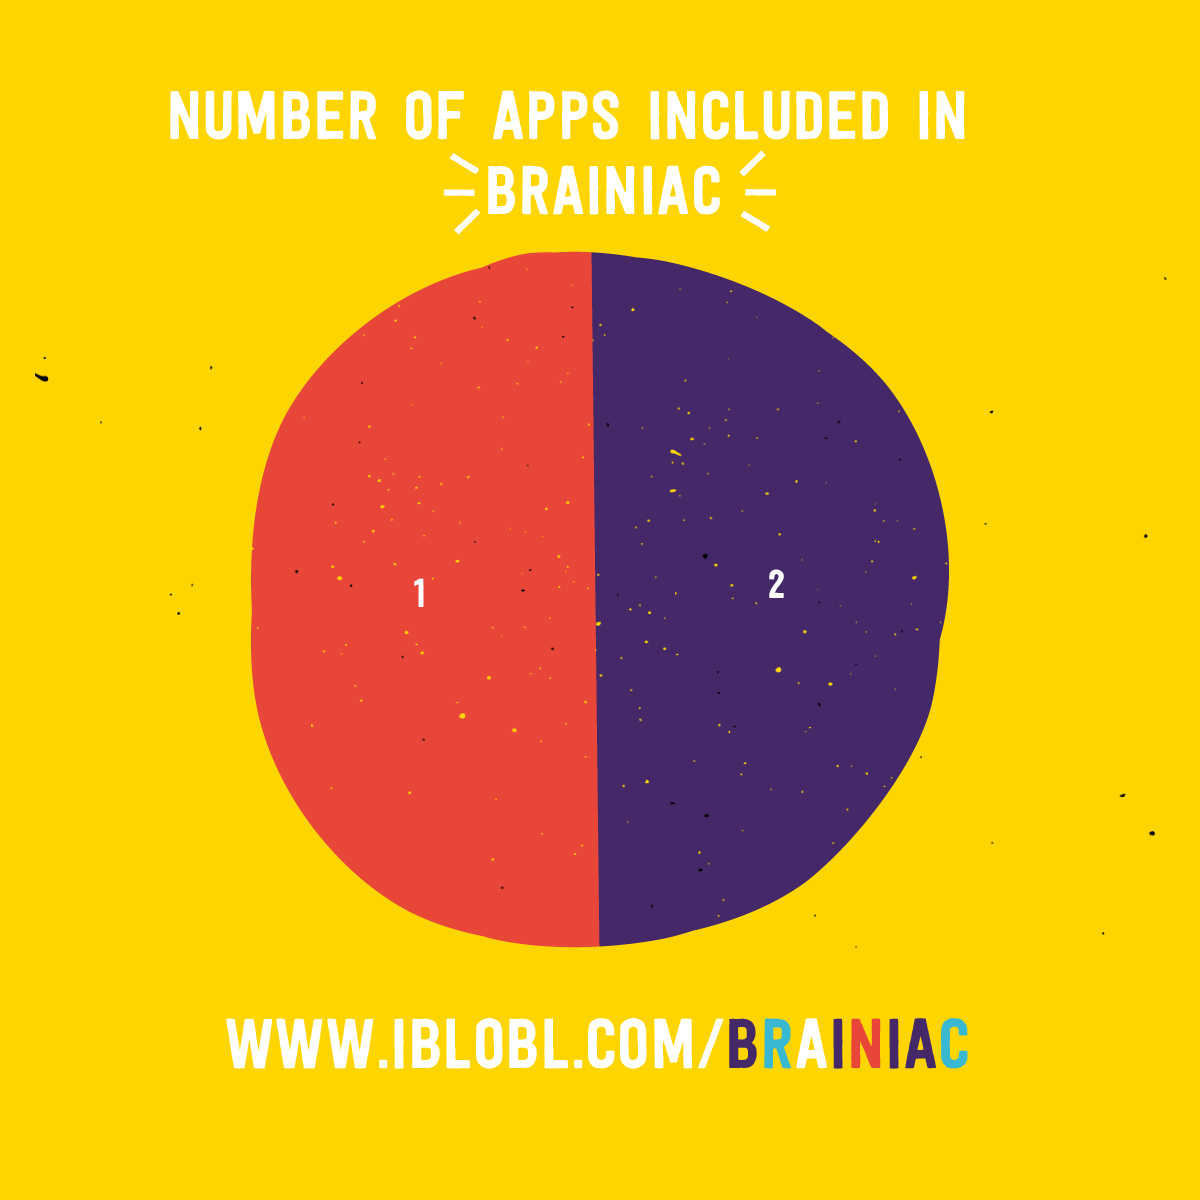 Number of apps in Ibbleobble Brainiac